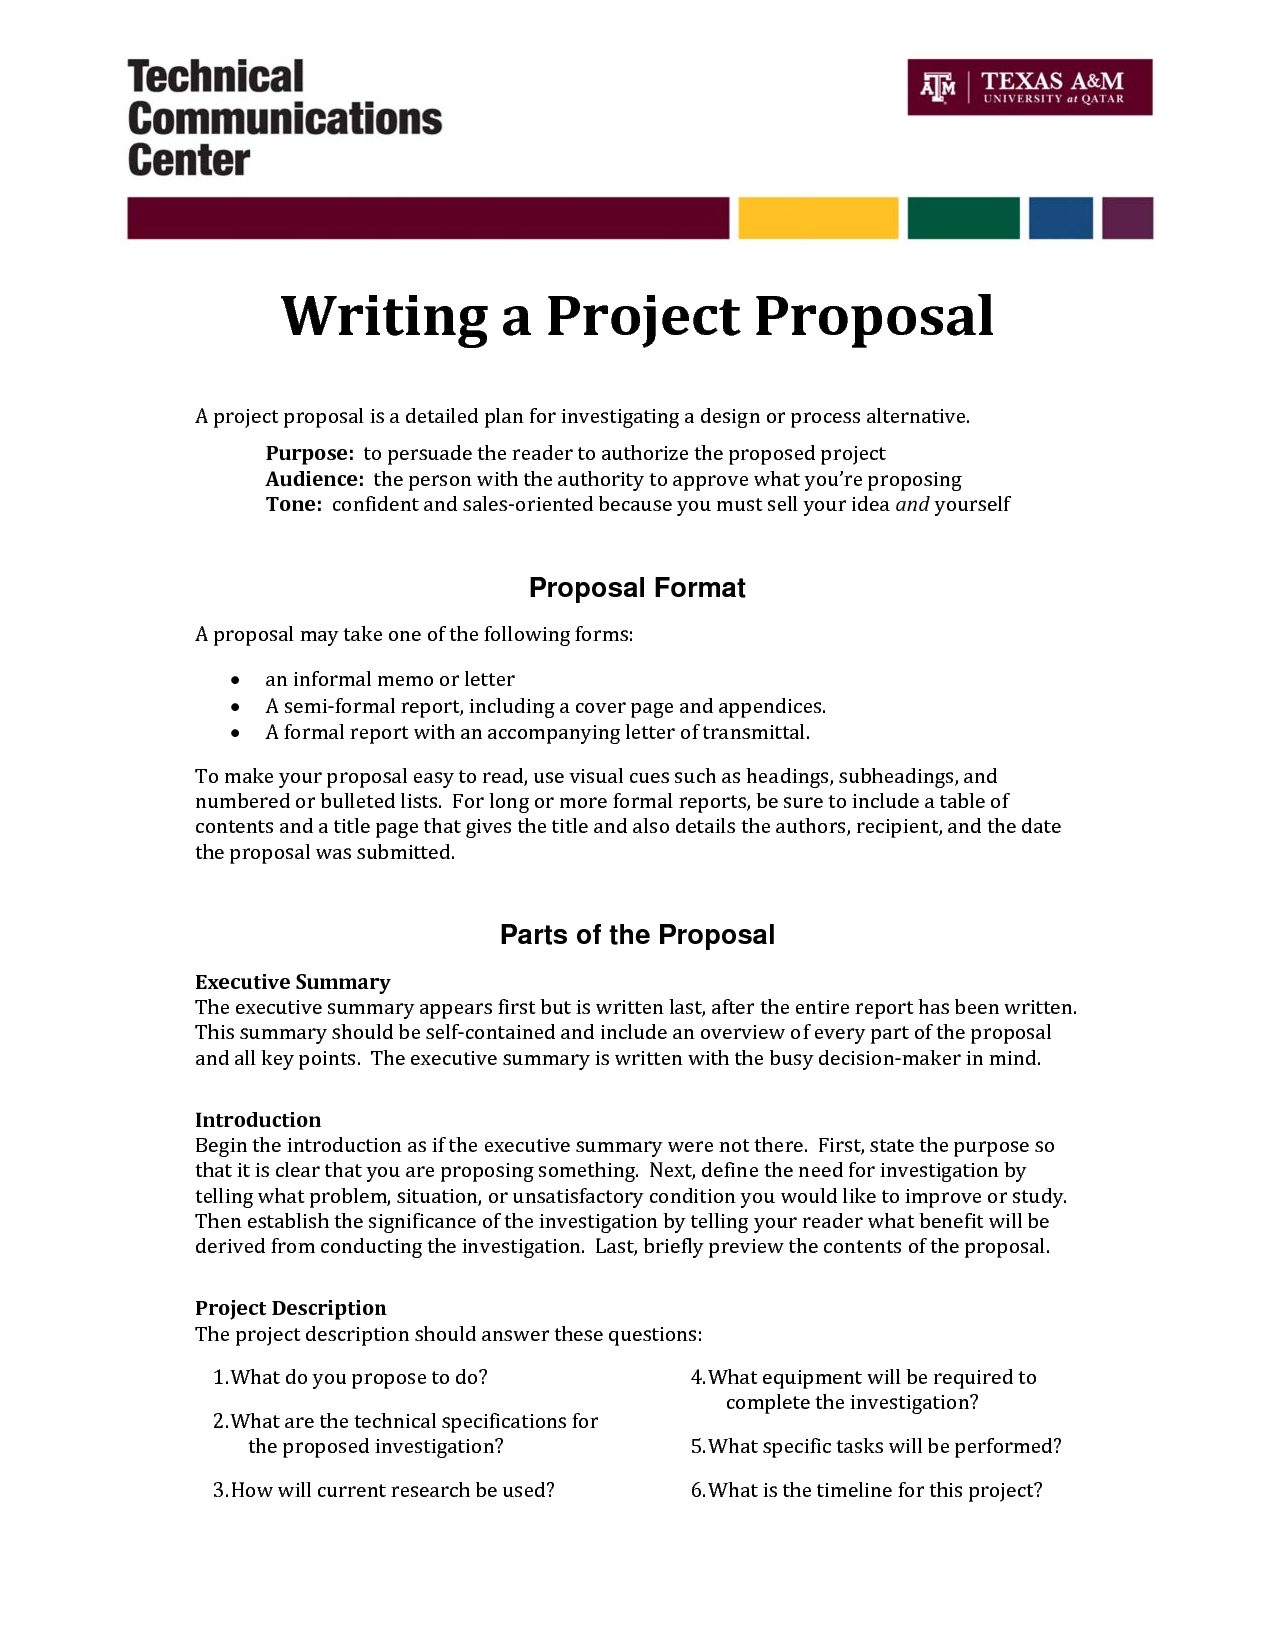 The Proposal Writer's Guide: Overview